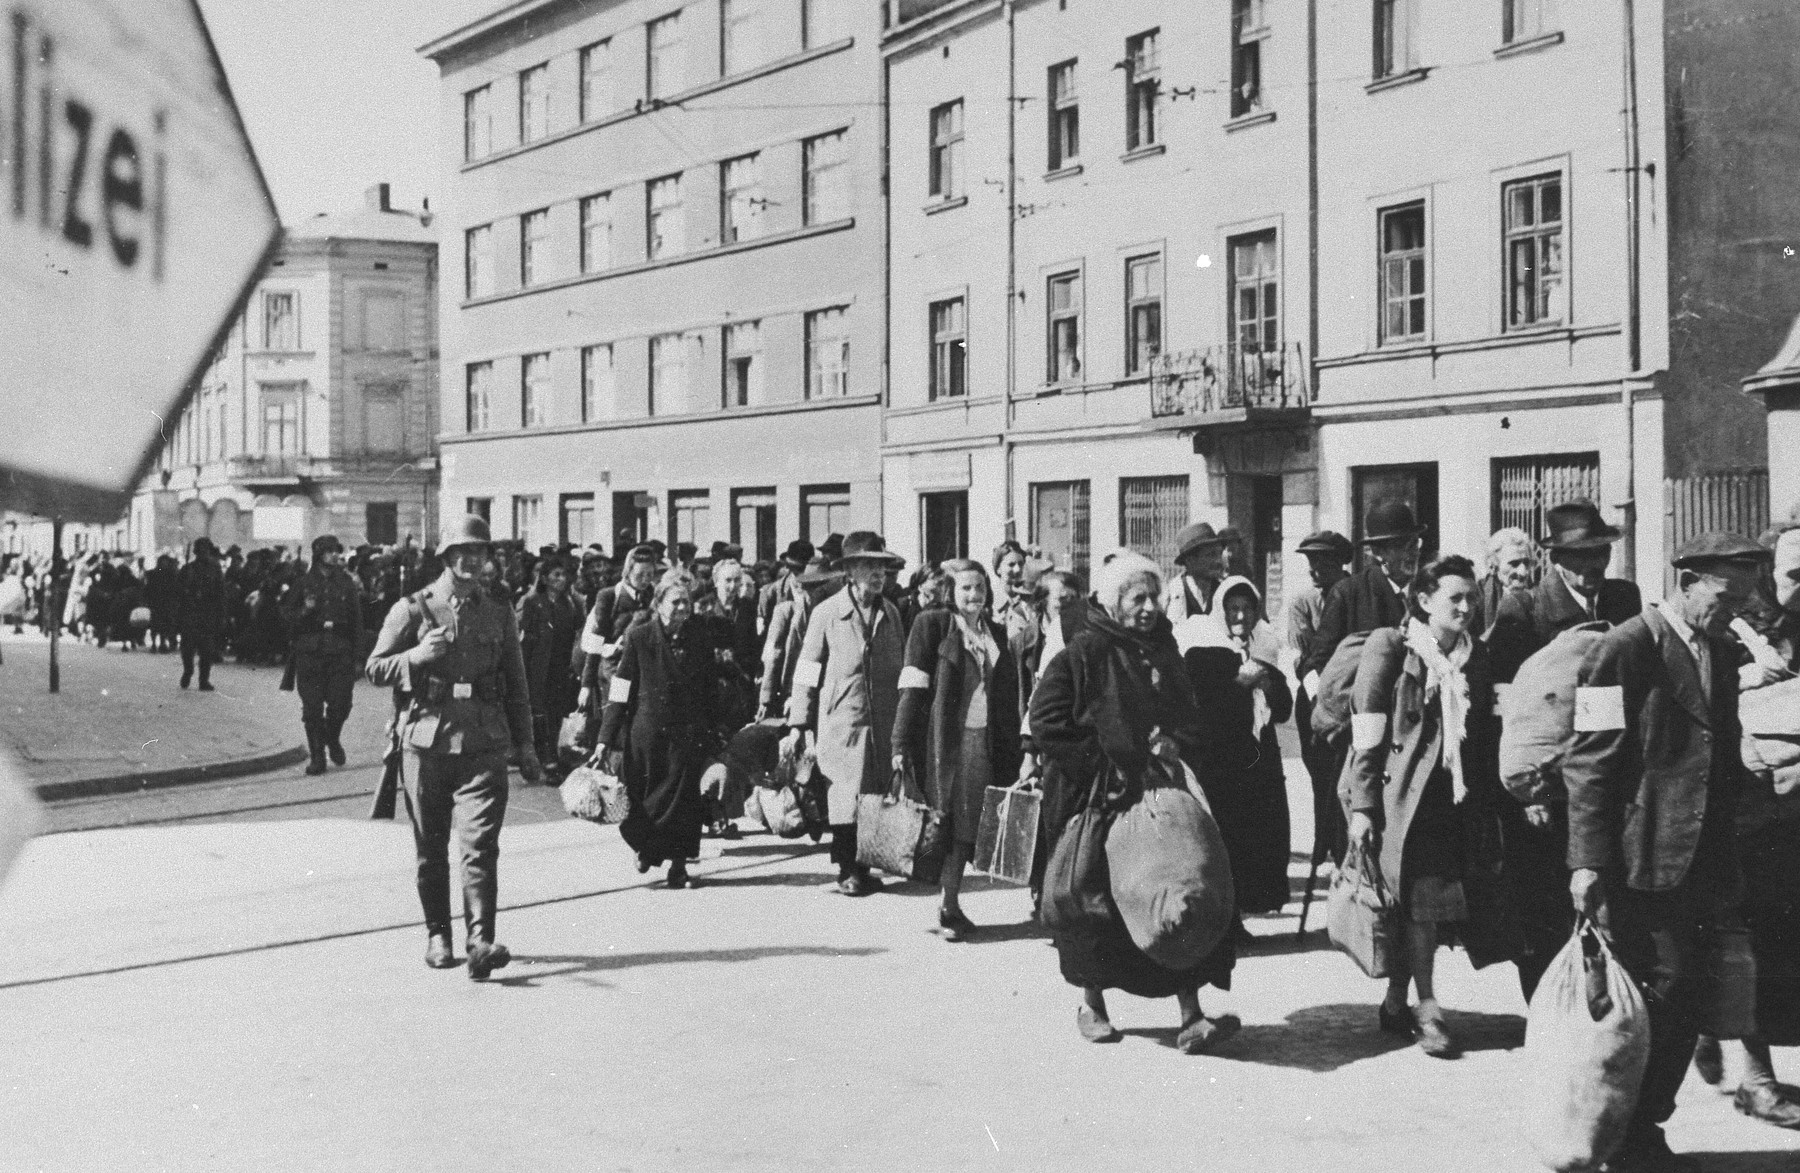 A column of Jews march with bundles down a main street in Krakow during the liquidation of the ghetto.  SS guards oversee the deportation action.